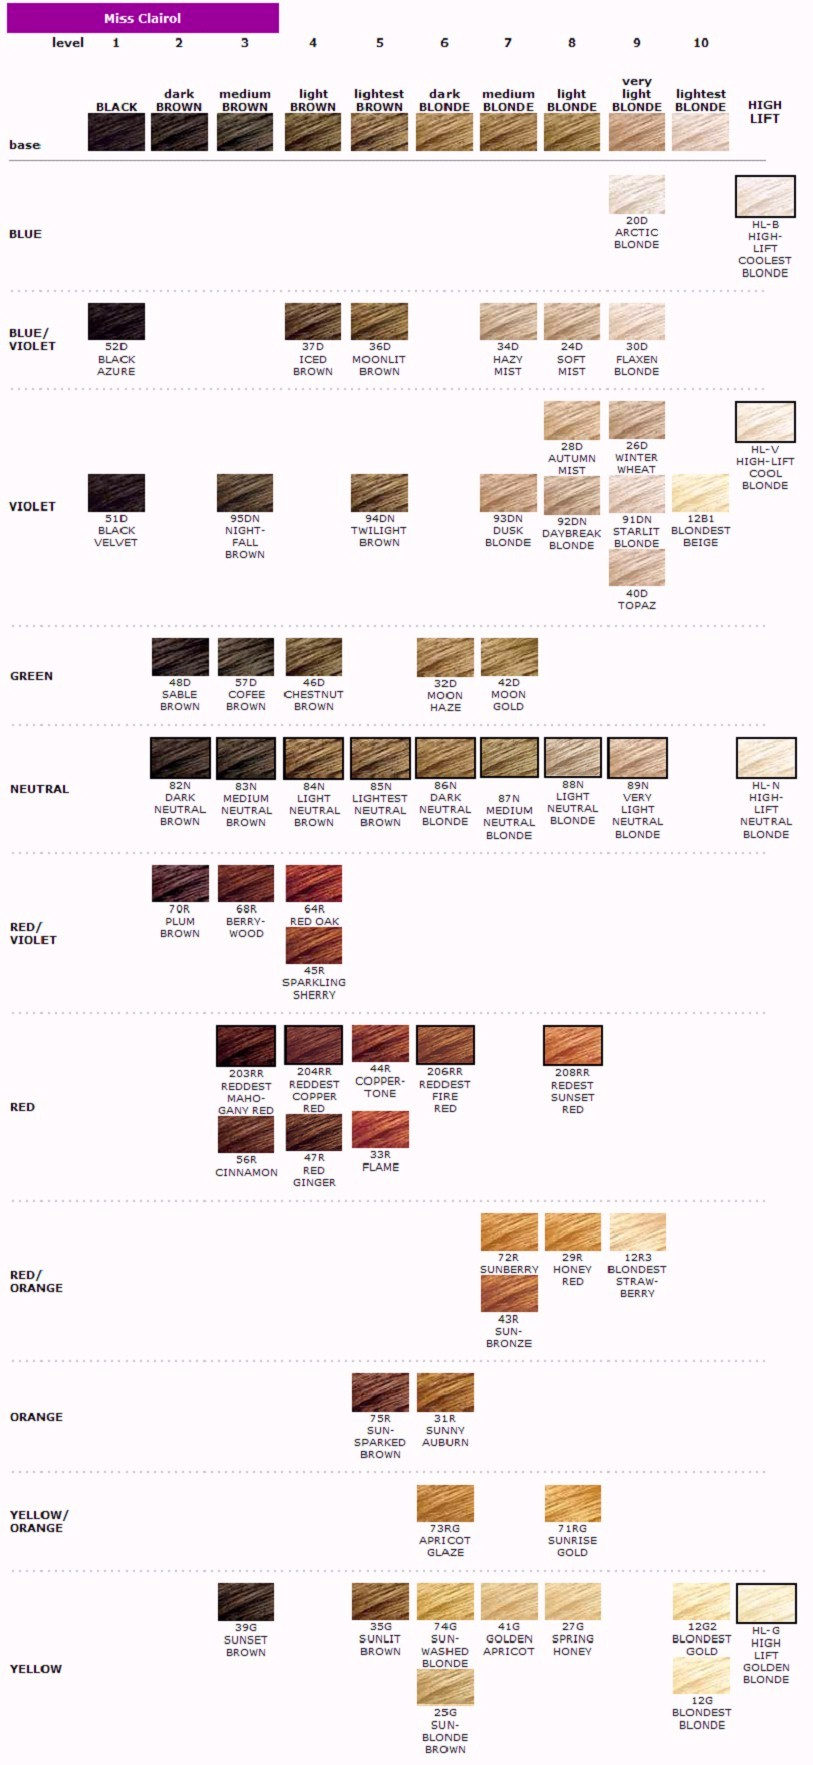 Colour Fondant Colour Mix Chart Numbers Indicate The